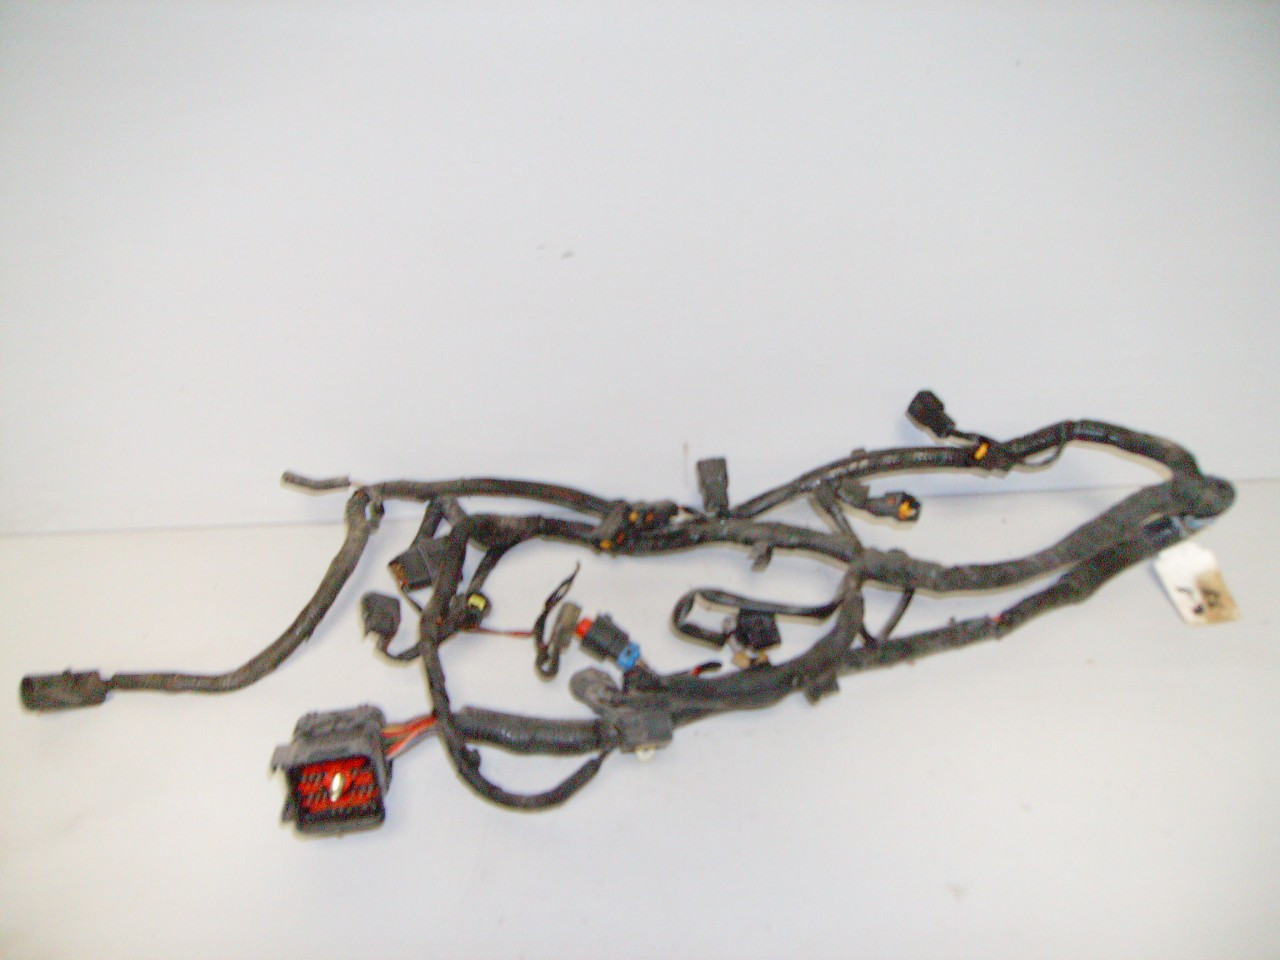 1996 1998 ford mustang 3 8 engine injection wire harness lx v6 image 1 [ 1280 x 960 Pixel ]